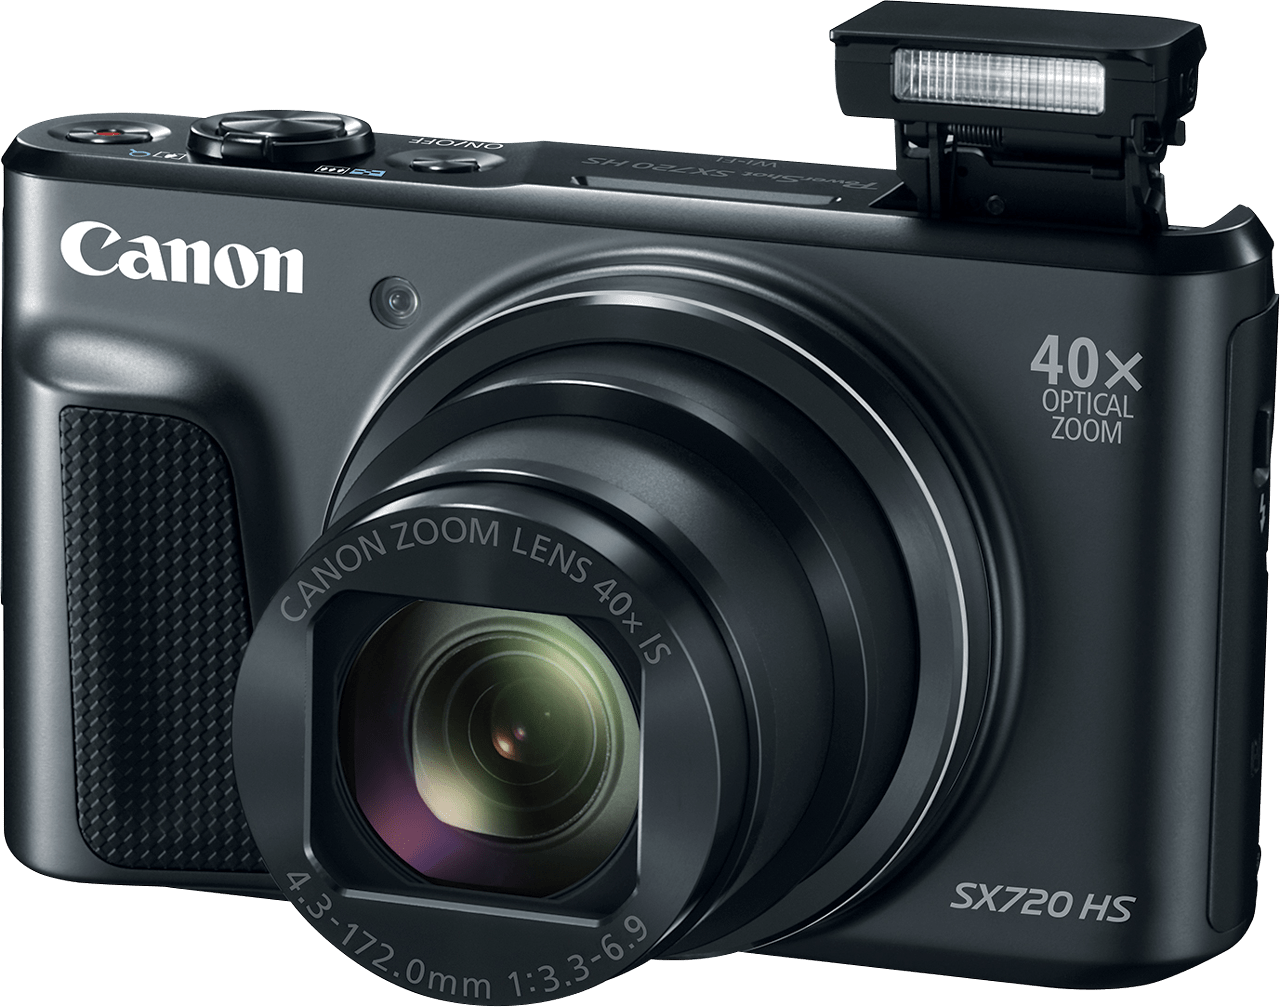 amazon Canon PowerShot SX720 HS reviews Canon PowerShot SX720 HS on amazon newest Canon PowerShot SX720 HS prices of Canon PowerShot SX720 HS Canon PowerShot SX720 HS deals best deals on Canon PowerShot SX720 HS buying a Canon PowerShot SX720 HS lastest Canon PowerShot SX720 HS what is a Canon PowerShot SX720 HS Canon PowerShot SX720 HS at amazon where to buy Canon PowerShot SX720 HS where can i you get a Canon PowerShot SX720 HS online purchase Canon PowerShot SX720 HS Canon PowerShot SX720 HS sale off Canon PowerShot SX720 HS discount cheapest Canon PowerShot SX720 HS Canon PowerShot SX720 HS for sale Canon PowerShot SX720 HS products Canon PowerShot SX720 HS tutorial Canon PowerShot SX720 HS specification Canon PowerShot SX720 HS features Canon PowerShot SX720 HS test Canon PowerShot SX720 HS series Canon PowerShot SX720 HS service manual Canon PowerShot SX720 HS instructions Canon PowerShot SX720 HS accessories avis canon powershot sx720 hs canon powershot sx270 hs anleitung canon powershot sx720 hs (black) canon - powershot sx720 hs 20.3-megapixel digital camera - black canon powershot sx710 hs best buy canon powershot sx720 hs digital camera - black (20.3 mp) canon powershot sx720 hs bedienungsanleitung canon powershot sx710 hs bewertung canon powershot sx720 hs canon powershot sx720 hs giá canon powershot sx710 hs vs canon powershot sx720 hs canon powershot sx720 hs đánh giá canon powershot sx720 hs digital camera canon powershot sx720 hs digital camera review canon - powershot sx720 hs 20.3-megapixel digital camera canon powershot sx720 hs case canon powershot sx720 hs release date digitalkamera canon powershot sx720 hs canon powershot sx720 hs datenblatt canon powershot sx720 hs fiyat canon powershot sx720 hs fiyatı canon powershot sx720 hs fnac harga canon powershot sx240 hs canon powershot sx720 hs hinta canon powershot sx720 hs handbuch canon powershot sx720 hs price in india canon powershot sx720 hs sample images canon powershot sx720 hs idealo canon powershot sx720 hs kaufen canon powershot sx720 hs manual canon powershot sx 720 hs mit 40 fach-zoom canon powershot sx720 hs media markt canon powershot sx720 hs noir canon powershot sx720 hs opinie precio canon powershot sx720 hs canon powershot sx720 hs price canon powershot sx720 hs preis canon powershot sx720 hs prix canon powershot sx720 hs pris canon powershot sx720 hs preisvergleich canon powershot sx700 hs prezzi canon powershot sx720 hs pret review canon powershot sx720 hs canon powershot sx720 hs red canon powershot sx720 hs recensione canon powershot sx720 hs reisekamera recensione canon powershot sx720 hs canon powershot sx720 hs rouge canon powershot sx720 hs recenze test canon powershot sx720 hs reisekamera canon powershot sx720 hs specs canon powershot sx720 hs sample canon powershot sx720 hs schwarz canon powershot sx720 hs schwarz test canon powershot sx700 hs saturn test canon powershot sx720 hs testbericht canon powershot sx720 hs canon powershot sx720 hs teszt canon powershot sx720 hs test canon powershot sx720 hs uk canon powershot sx720 hs vergleich canon powershot sx720 hs youtube canon powershot sx720 hs zwart canon powershot sx 720 hs zoom canon powershot sx720 hs avis canon canon powershot sx720 hs canon powershot sx720 hs vs canon powershot sx710 hs canon powershot sx720 hs cena canon powershot sx720 hs chip canon powershot sx720 hs review canon powershot sx720 hs precio canon powershot sx720 hs testbericht canon powershot sx720 is canon powershot sx720 hs australia canon powershot sx720 hs app canon powershot sx720 hs accessories canon powershot sx720 hs battery canon powershot sx720 hs best buy canon powershot sx720 hs black canon powershot sx720 hs black digital camera canon powershot sx720 hs black friday canon powershot sx720 hs battery life canon powershot sx720 hs buy canon powershot sx720 hs best price canon powershot sx720 hs b&h canon powershot sx720 hs black travel kit digital camera canon powershot sx720 hs canada canon powershot sx720 hs camera canon powershot sx720 hs charger canon powershot sx720 hs compact digital camera canon powershot sx720 hs camera review canon powershot sx720 hs cnet canon powershot sx720 hs connect to computer canon powershot sx720 hs date stamp canon powershot sx720 hs digital camera - black canon powershot sx720 hs digital canon powershot sx720 hs digital camera (red) canon powershot sx720 hs dpreview canon powershot sx720 hs digital camera case canon powershot sx720 hs digital camera manual canon powershot sx720 hs ebay canon powershot sx720 hs electronic manual canon powershot sx720 hs flash canon powershot sx720 hs flickr canon powershot sx720 hs harga canon powershot sx720 hs vs sx710 hs canon powershot sx720 hs iso canon powershot sx720 hs images canon powershot sx720 hs instruction manual canon powershot sx720 hs jb hi fi canon powershot sx720 hs kit canon powershot sx720 hs low light canon powershot sx720 hs memory card canon powershot sx720 hs nz canon powershot sx720 hs philippines canon powershot sx720 hs photos canon powershot sx720 hs panorama canon powershot sx720 hs price in bangladesh canon powershot sx720 hs point and shoot camera (black 20.3 mp) canon powershot sx720 hs price australia canon powershot sx720 hs price in pakistan canon powershot sx720 hs price in uae canon powershot sx720 hs refurbished canon powershot sx720 hs raw canon powershot sx720 hs review uk canon powershot sx720 hs red travel kit digital camera canon powershot sx720 hs tutorial canon powershot sx720 hs user guide canon powershot sx720 hs user manual canon powershot sx720 hs vs canon powershot sx730 hs canon powershot sx720 hs video canon powershot sx720 hs vs sony hx80 canon powershot sx720 hs vs nikon a900 canon powershot sx720 hs vs sx620 canon powershot sx720 hs video test canon powershot sx720 hs vs sony wx500 canon powershot sx720 hs zoom canon powershot sx720 hs 20.3mp digital camera 40x optical zoom - black canon powershot sx720 hs 20.3 mp compact digital camera - 1080p - black canon powershot sx720 hs 20.3mp digital camera 40x optical zoom canon powershot sx720 hs 20.3mp canon powershot sx720 hs 20.3mp 40x zoom wi fi / nfc digital camera canon powershot sx720 hs 20.3mp digital camera canon powershot sx720 hs 20.3 mp compact digital camera - 1080p - red